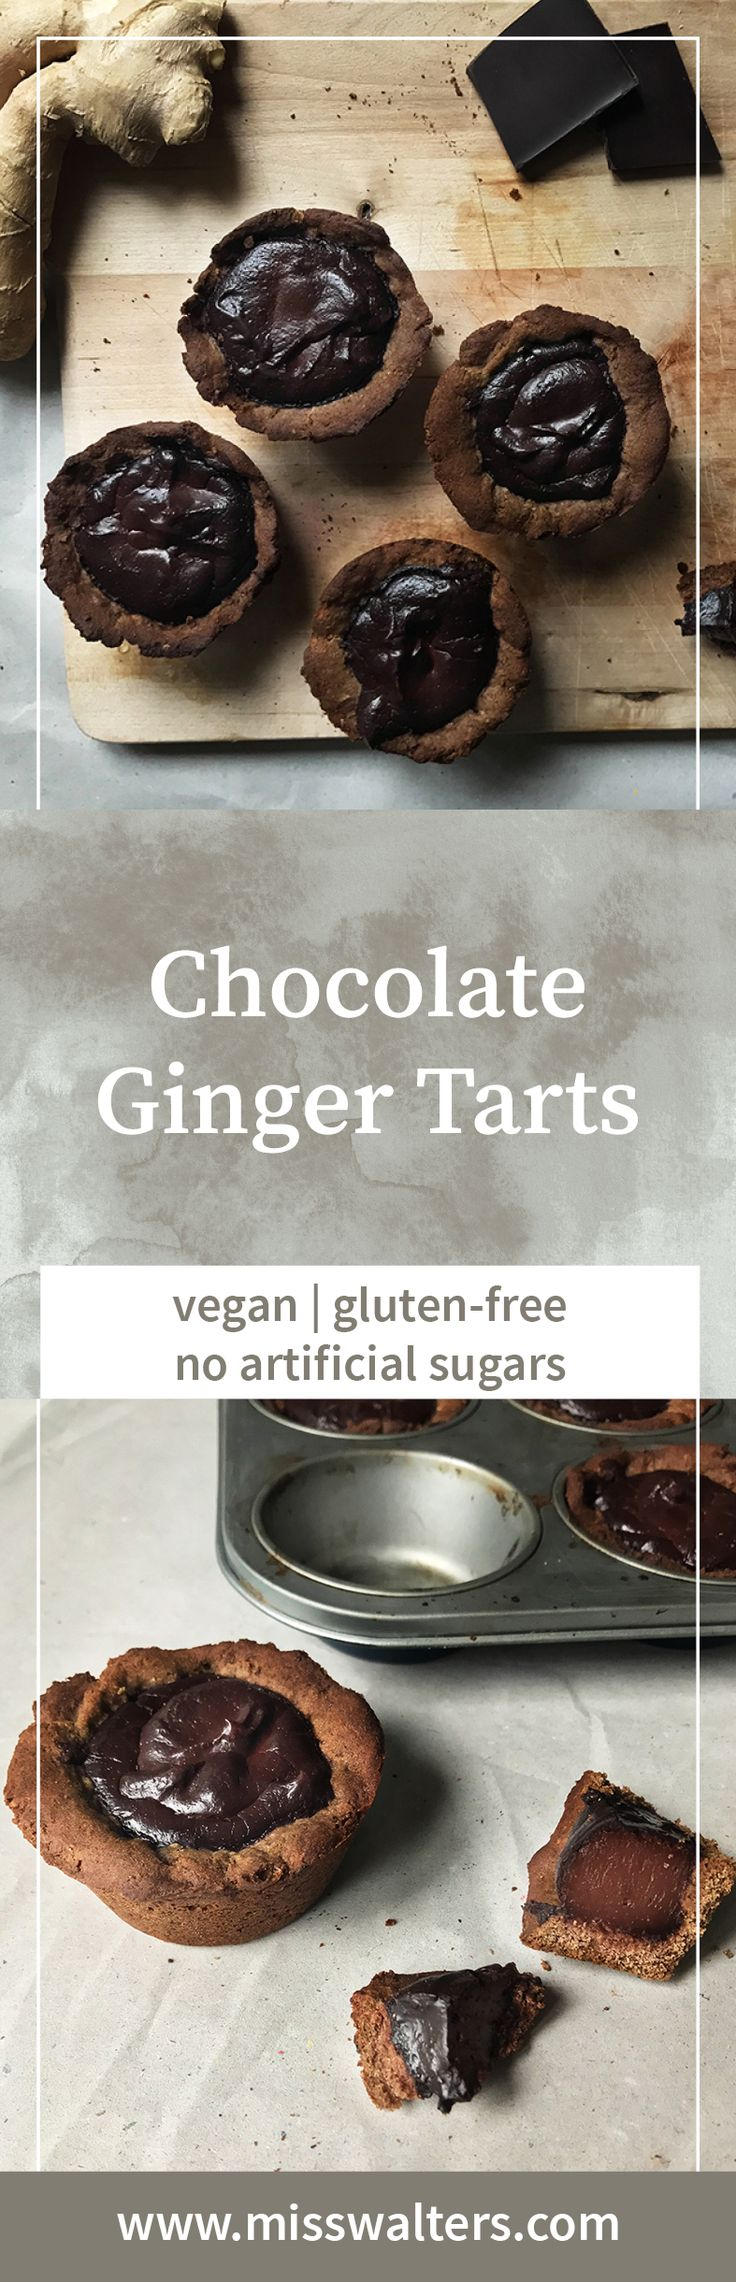 These chocolate ginger tarts a real vegan treat. Gluten-free and naturally sweet as an added bonus.